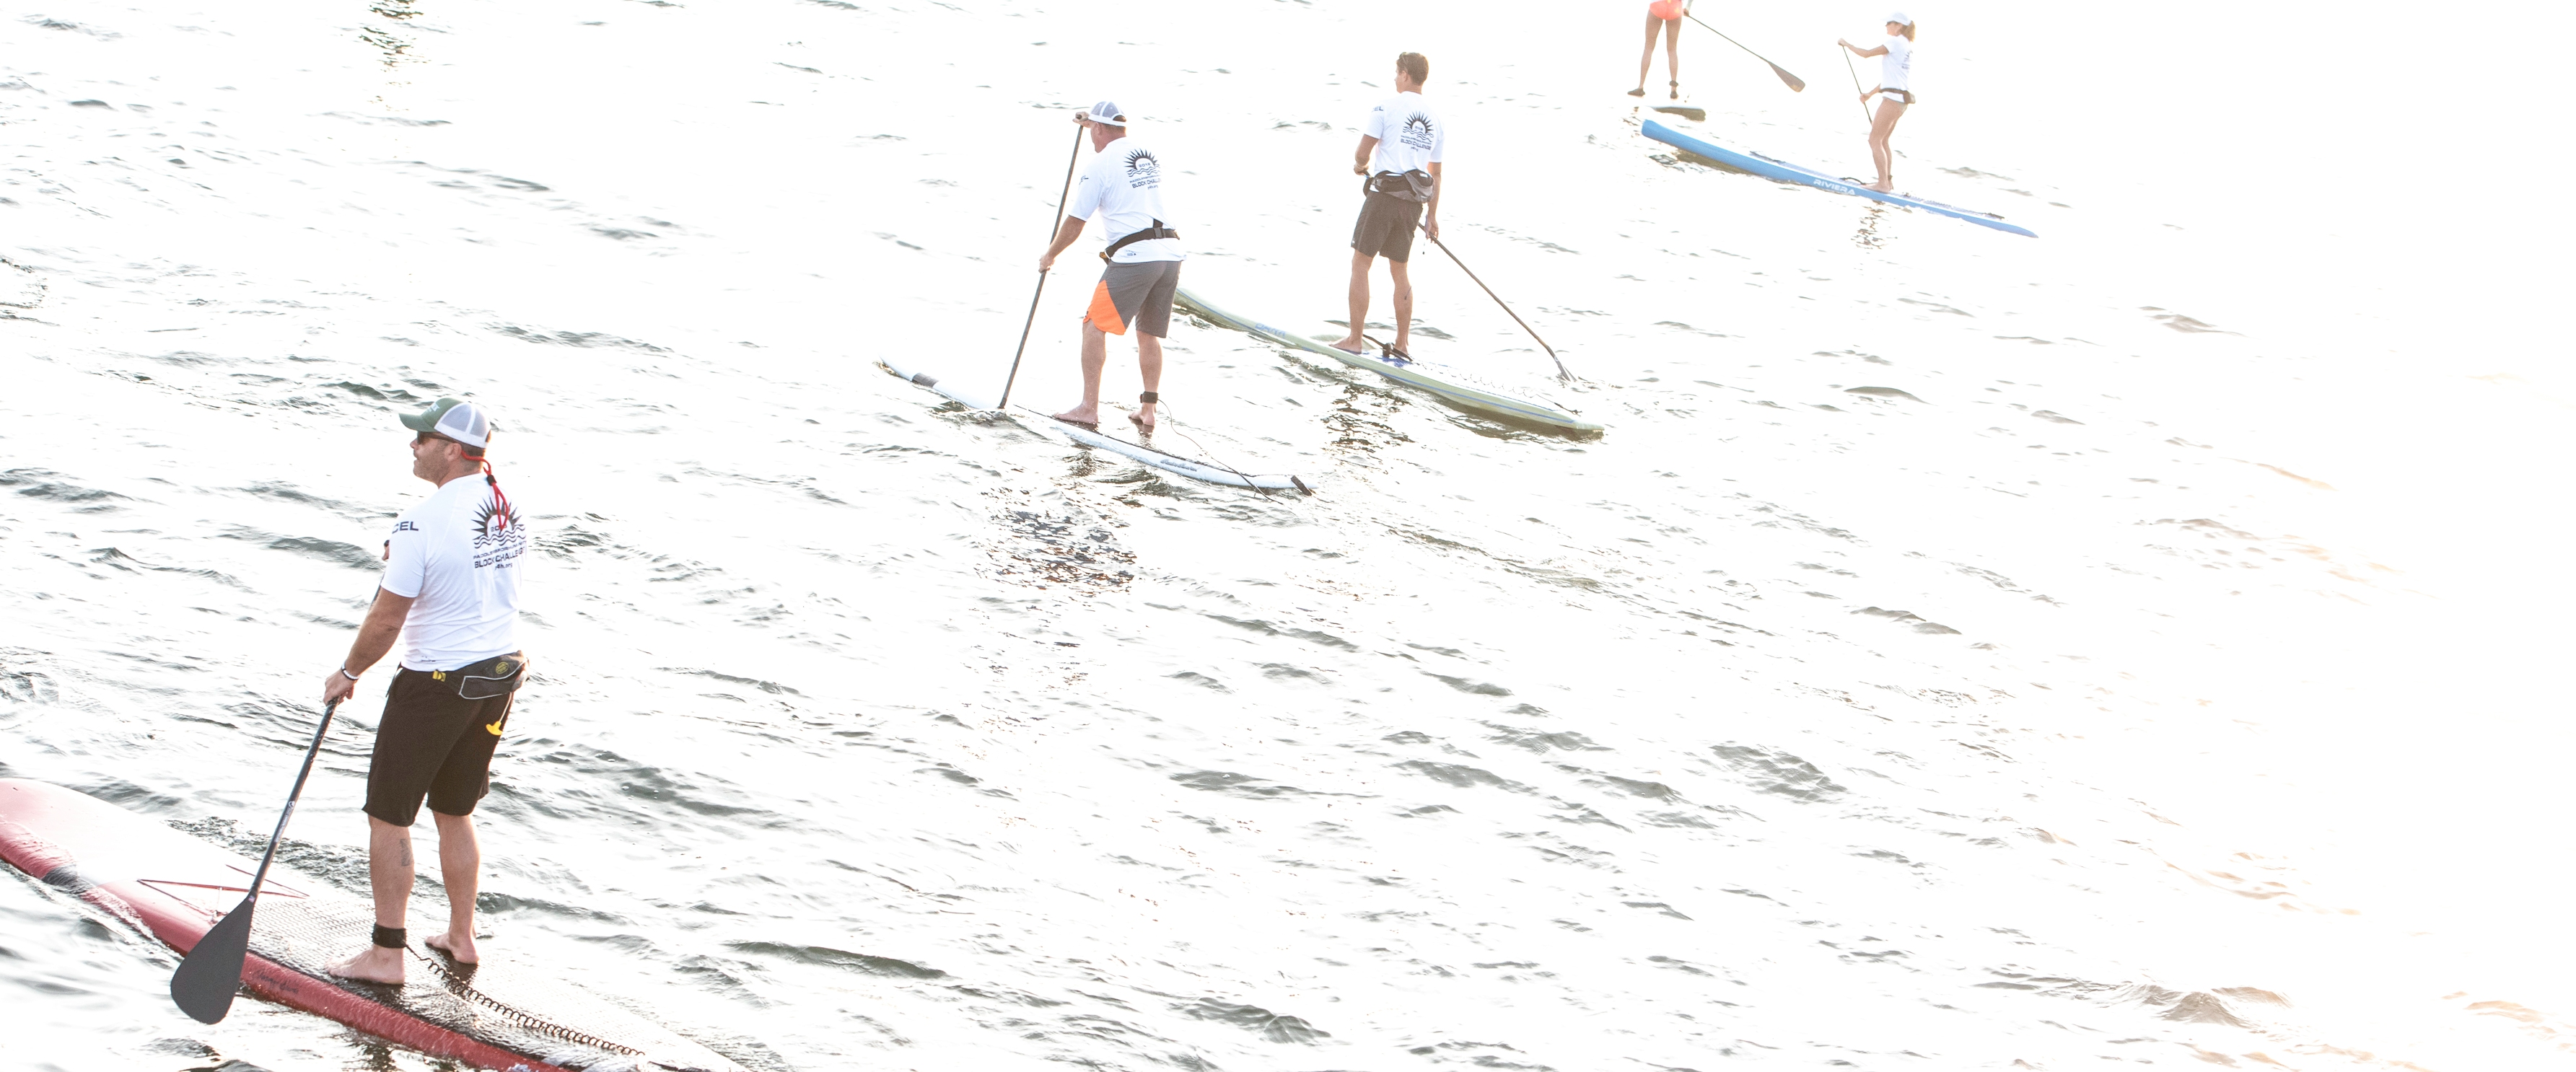 DV Paddlers whited out